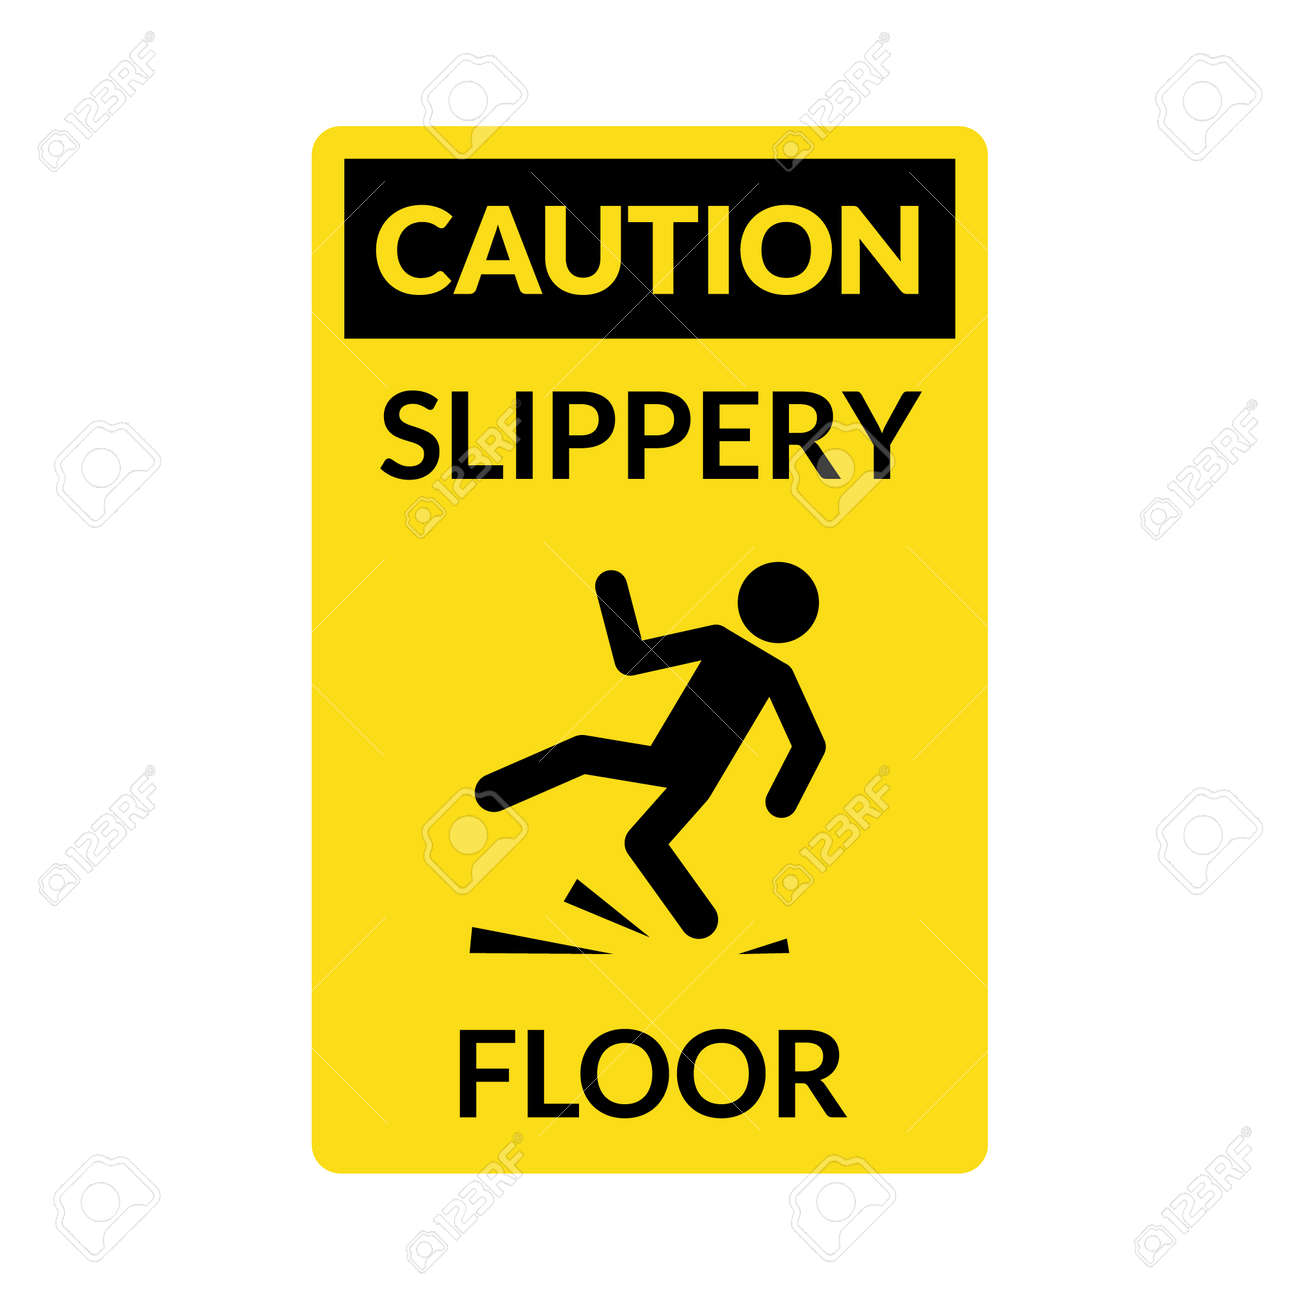 Wet floor sign. Safety yellow slippery floor warning icon vector caution symbol - 168952850